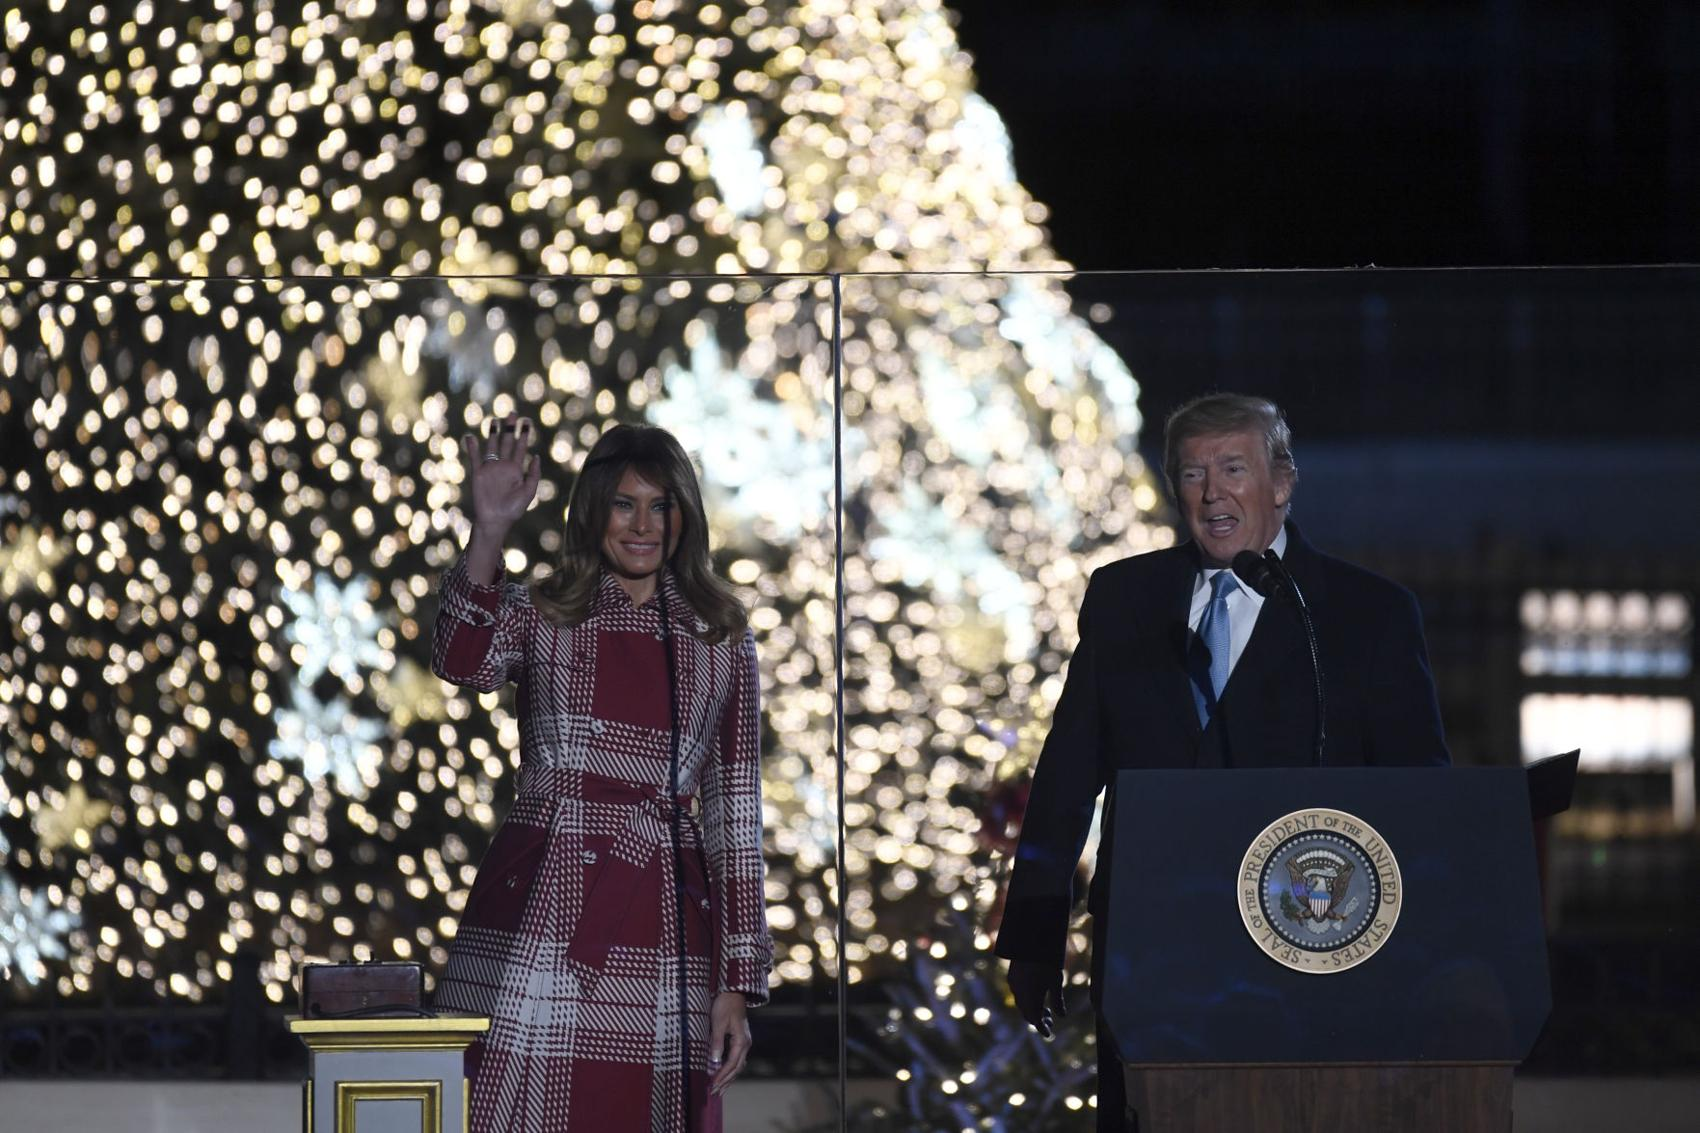 President Donald Trump and first lady Melania Trump light the National Christmas tree, Thursday, Dec. 5, 2019, in Washington. (AP Photo/Susan Walsh)